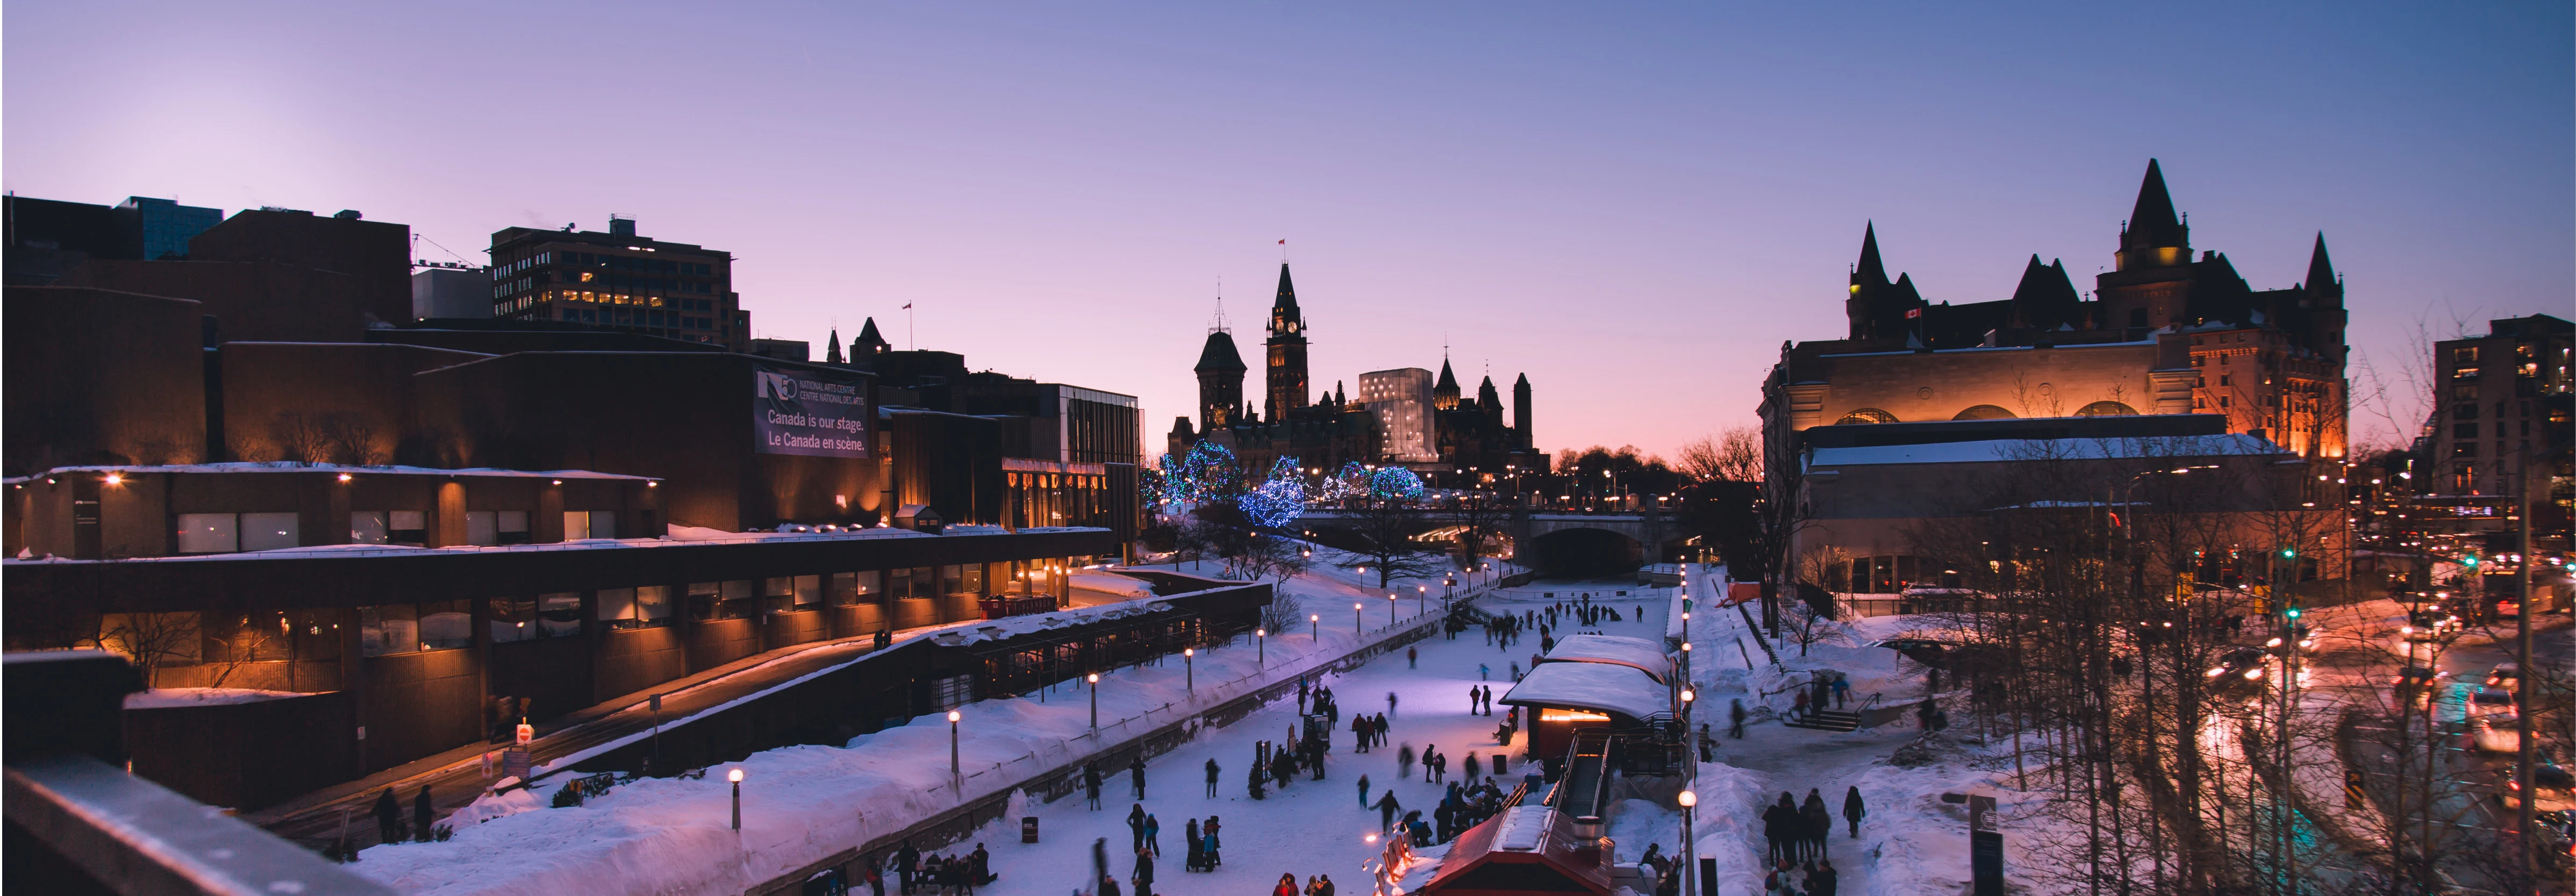 People skating on the Rideau Canal, in Ottawa.